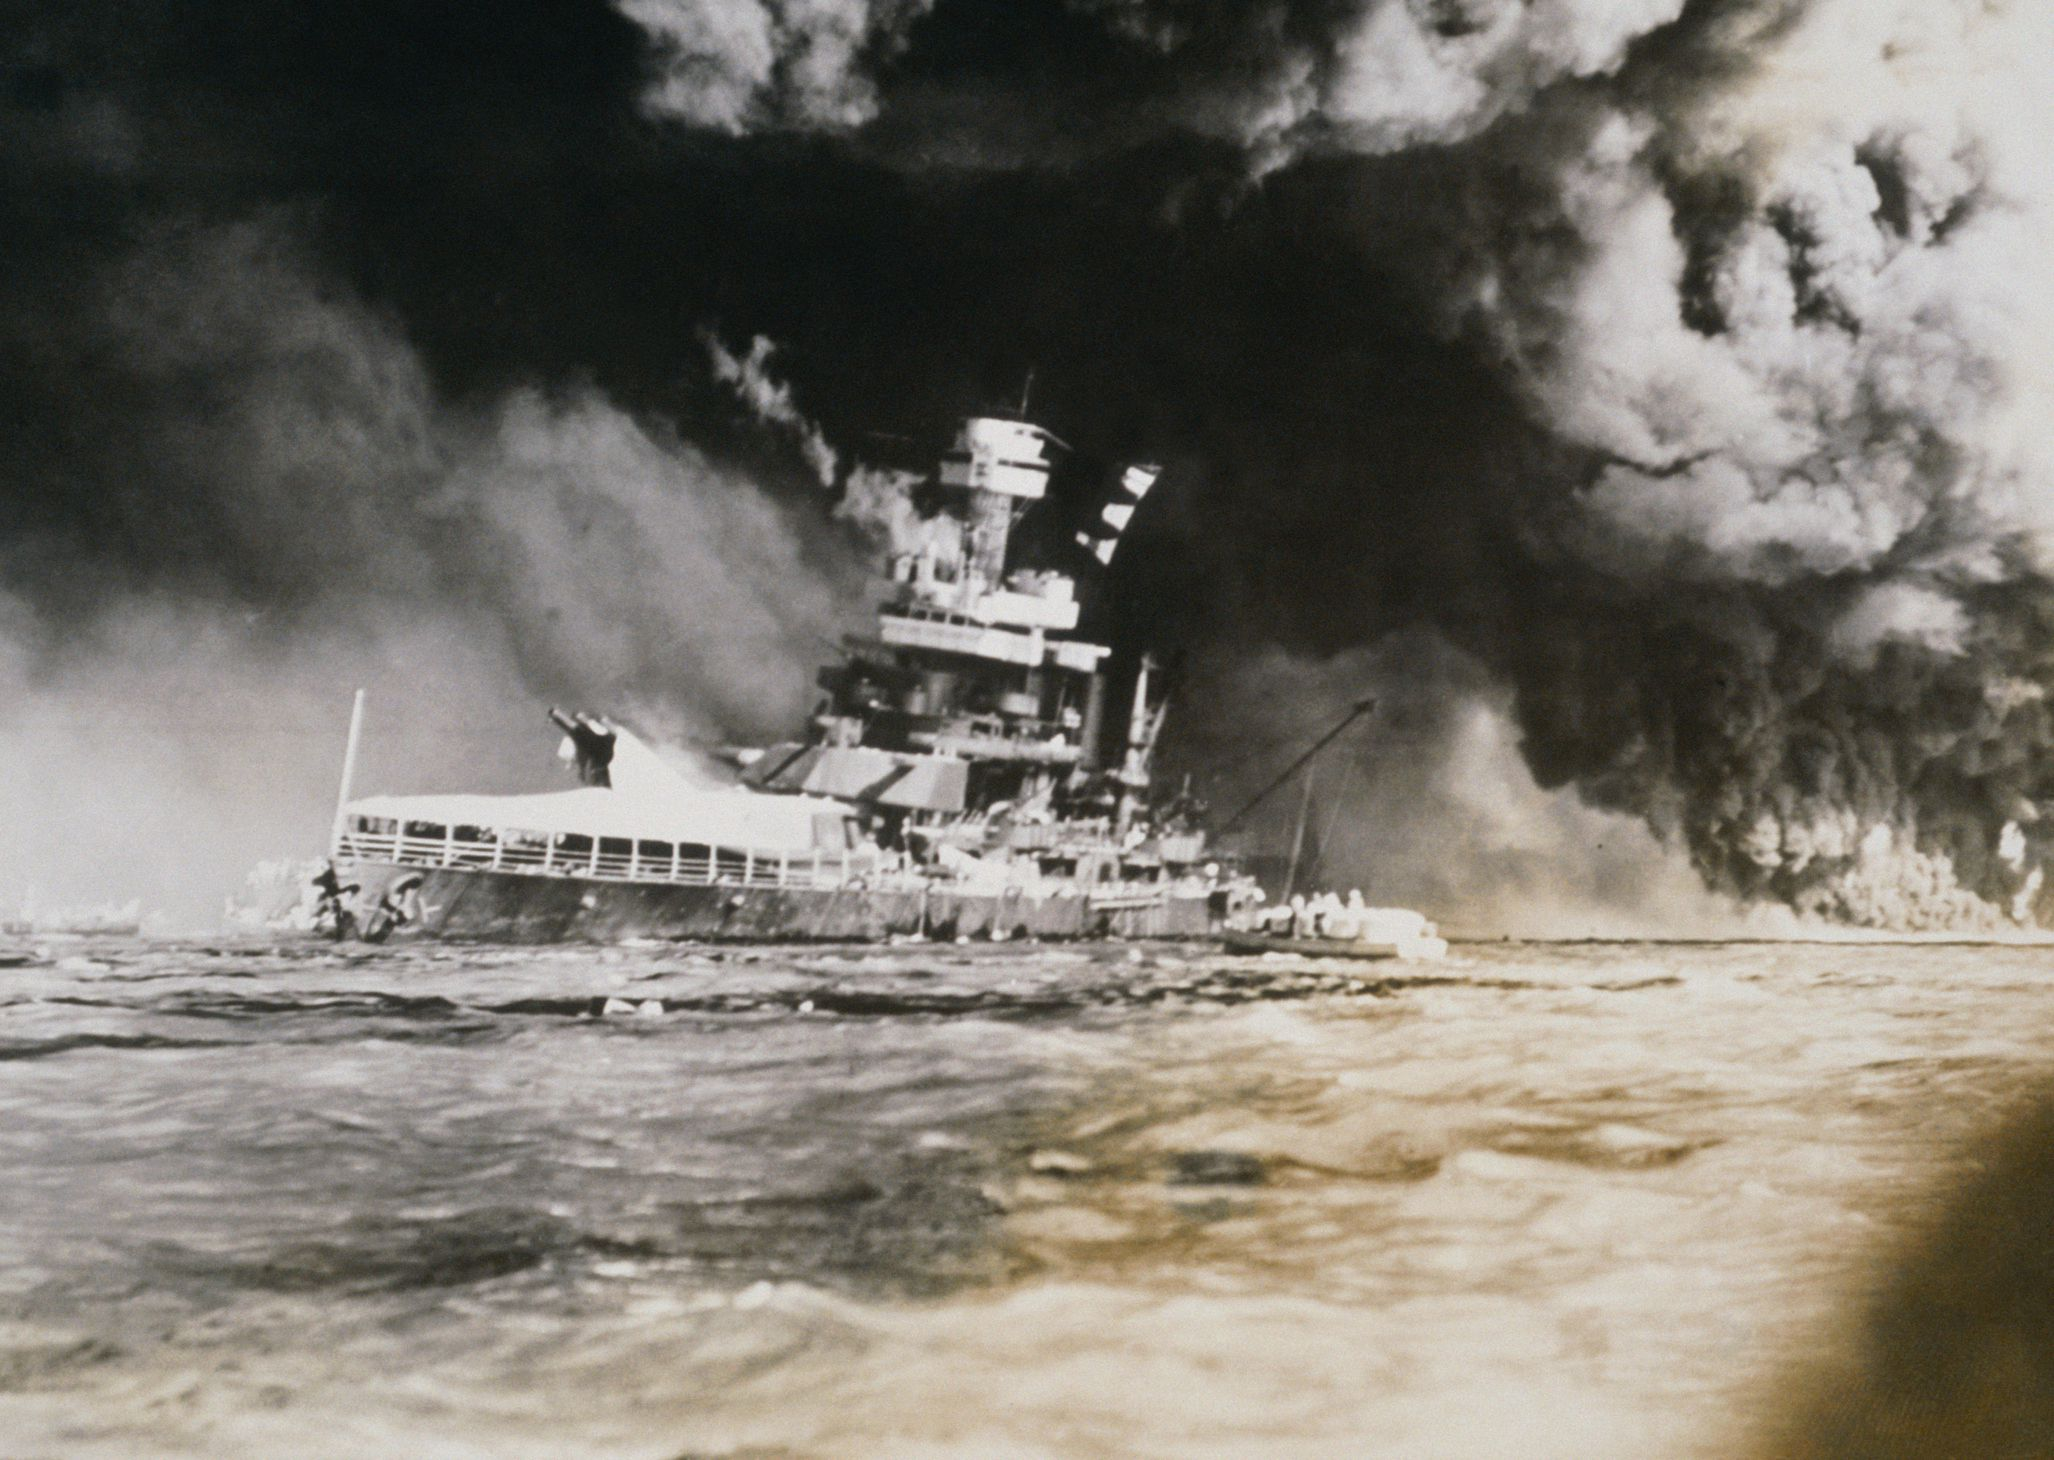 japans war with china and the attack on pearl harbor Imperial japan would have been far better off had it forgone the attack on pearl harbor and confined its operations to the western pacific bear in mind that japan had already been at war for a decade by the time it attacked hawaii the imperial japanese army invaded manchuria in 1931 and china.